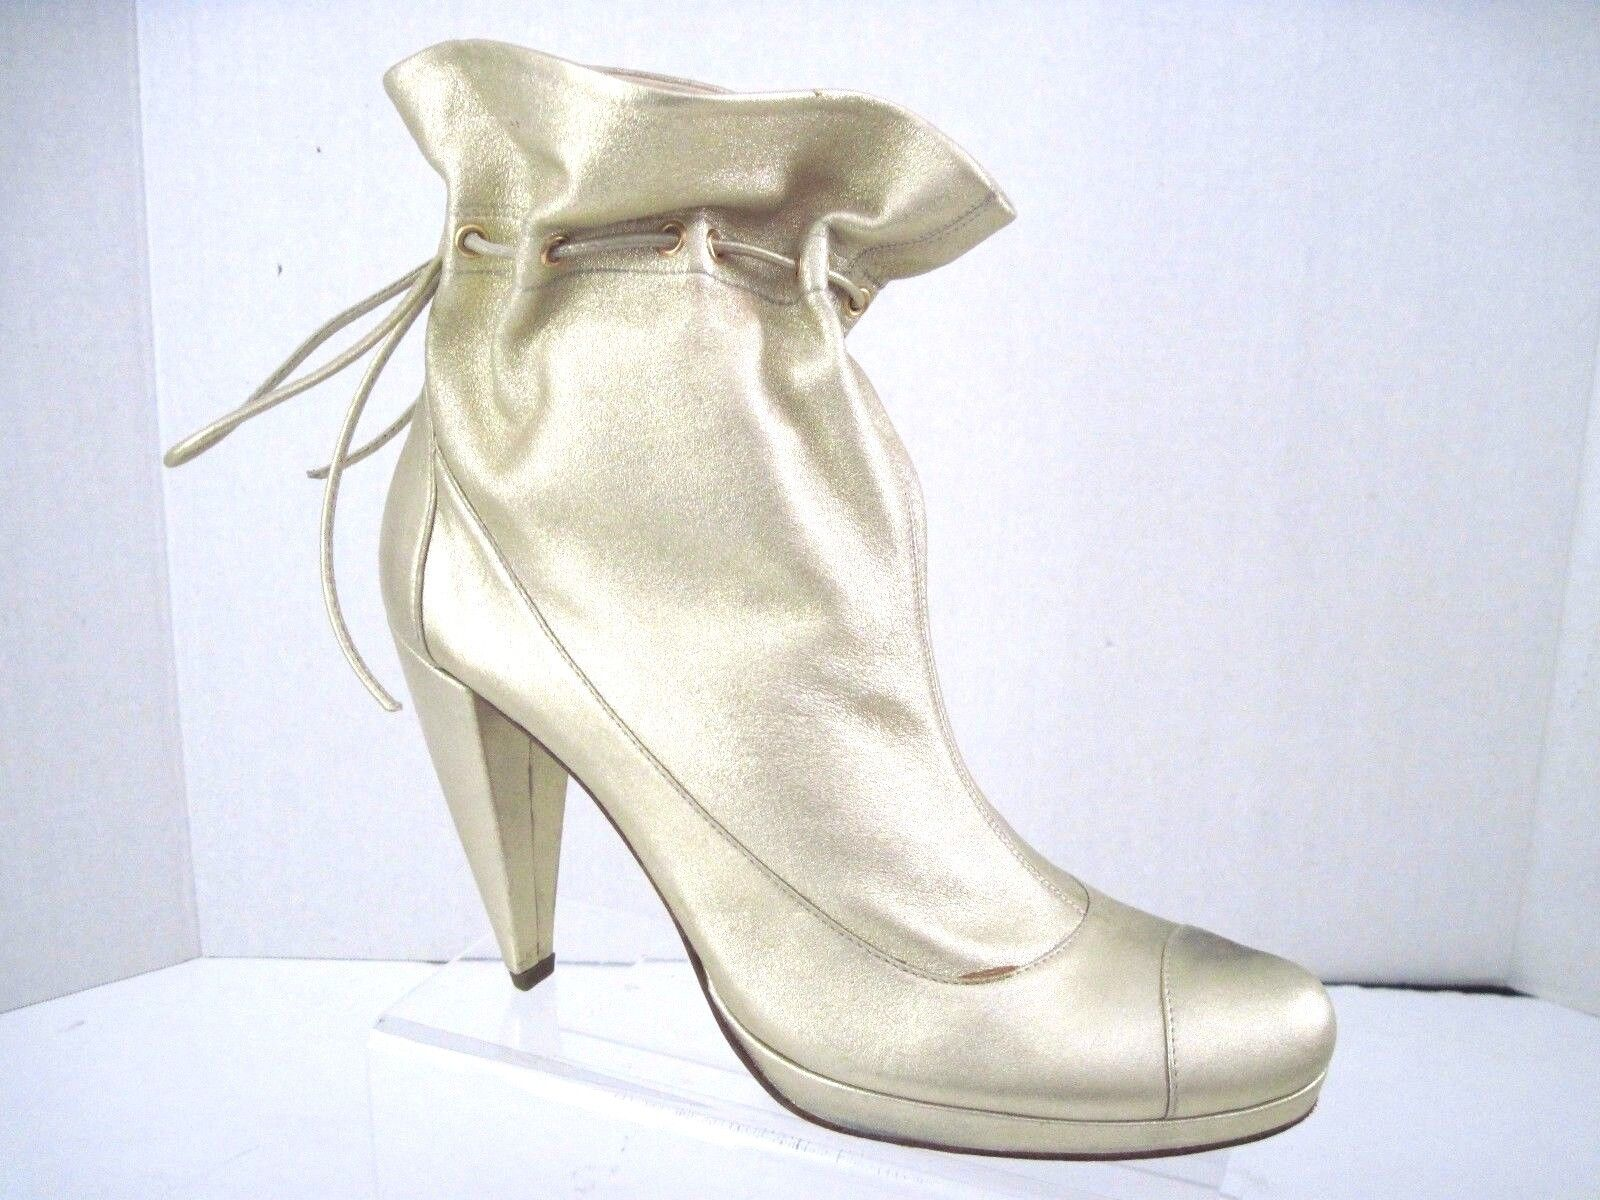 GIGI FAVELA Metallic Gold Leather Dress Rockabilly Abkle Booties SZ 37 1/2 Italy